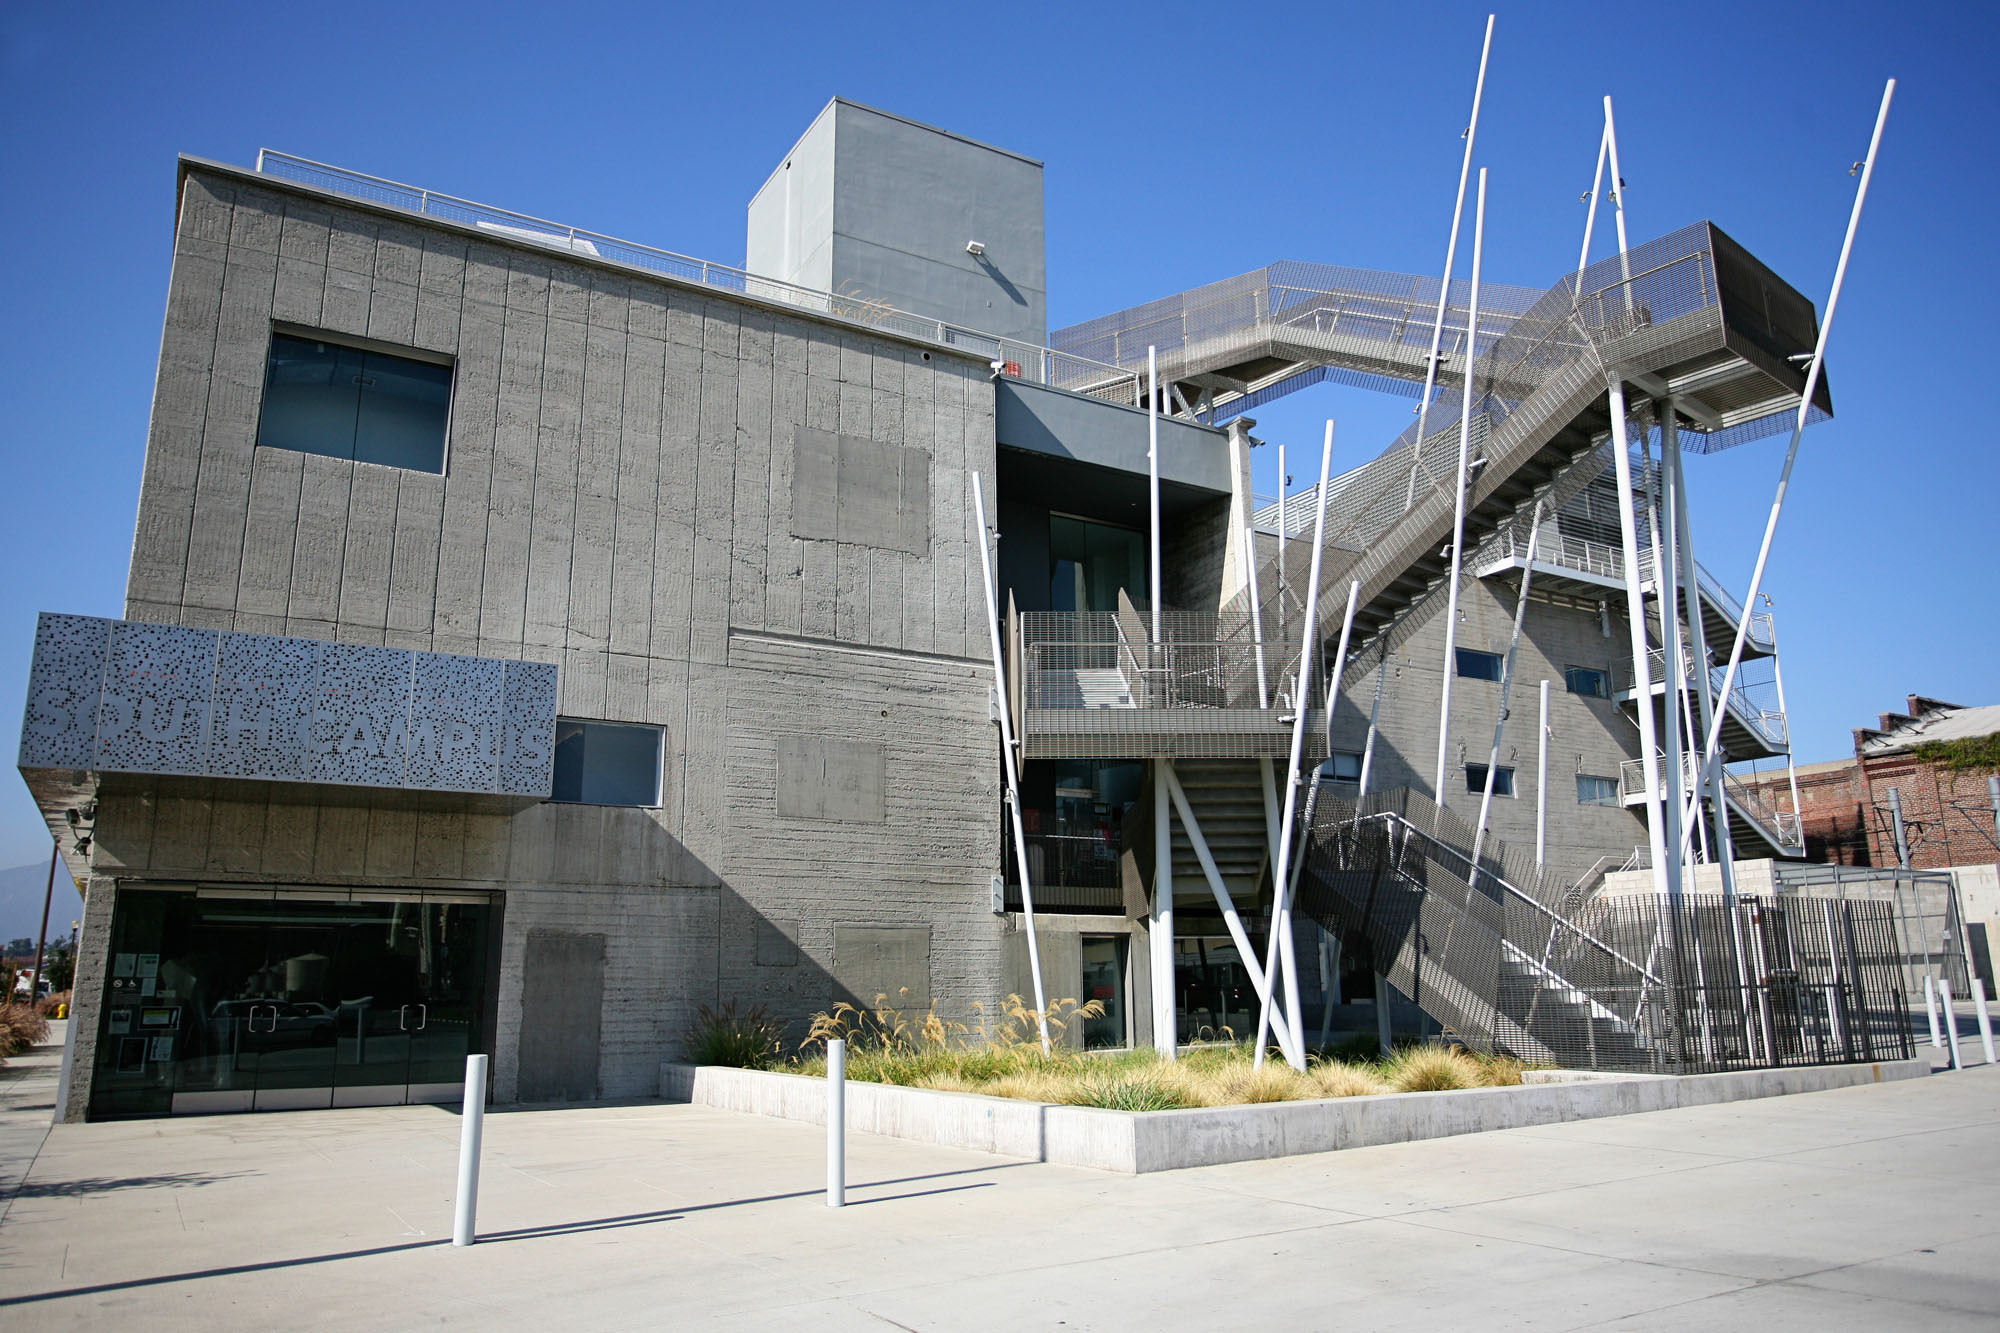 AD Architecture College Guide: Pasadena Art Center College of Design, Art Center's South Campus, designed by Daly/Genik Architects